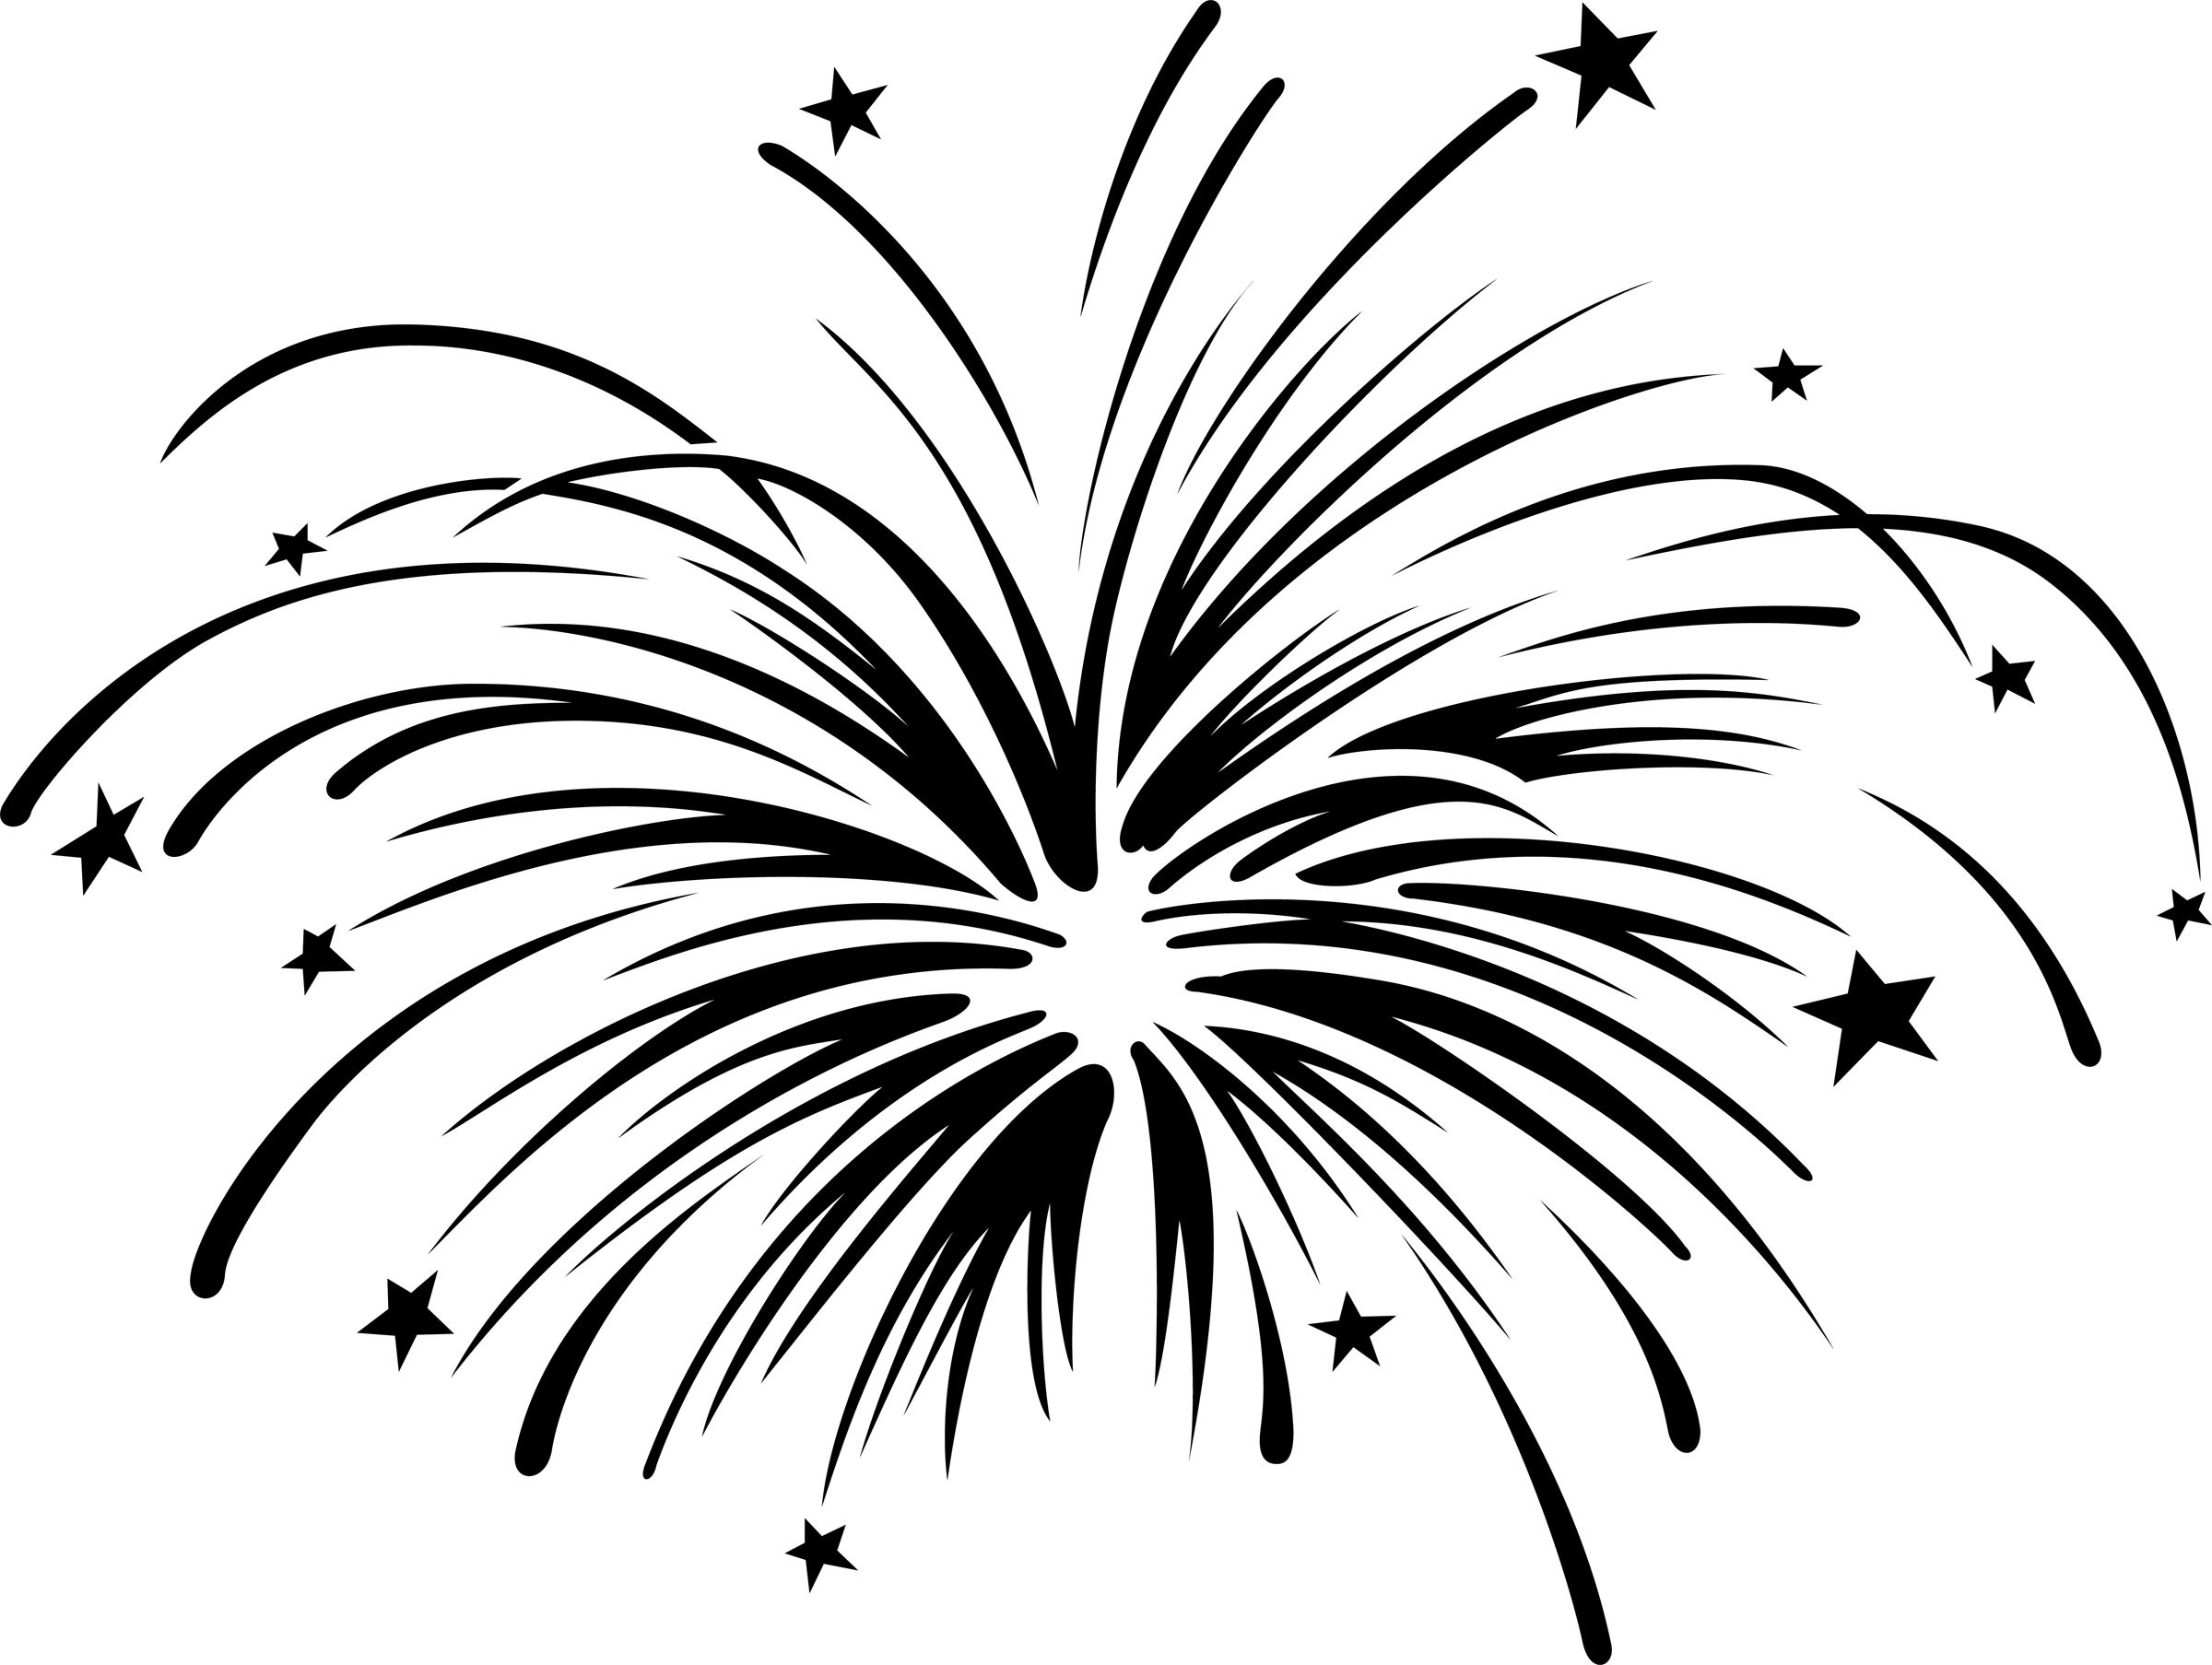 Years free clipart fireworks. With animation panda images